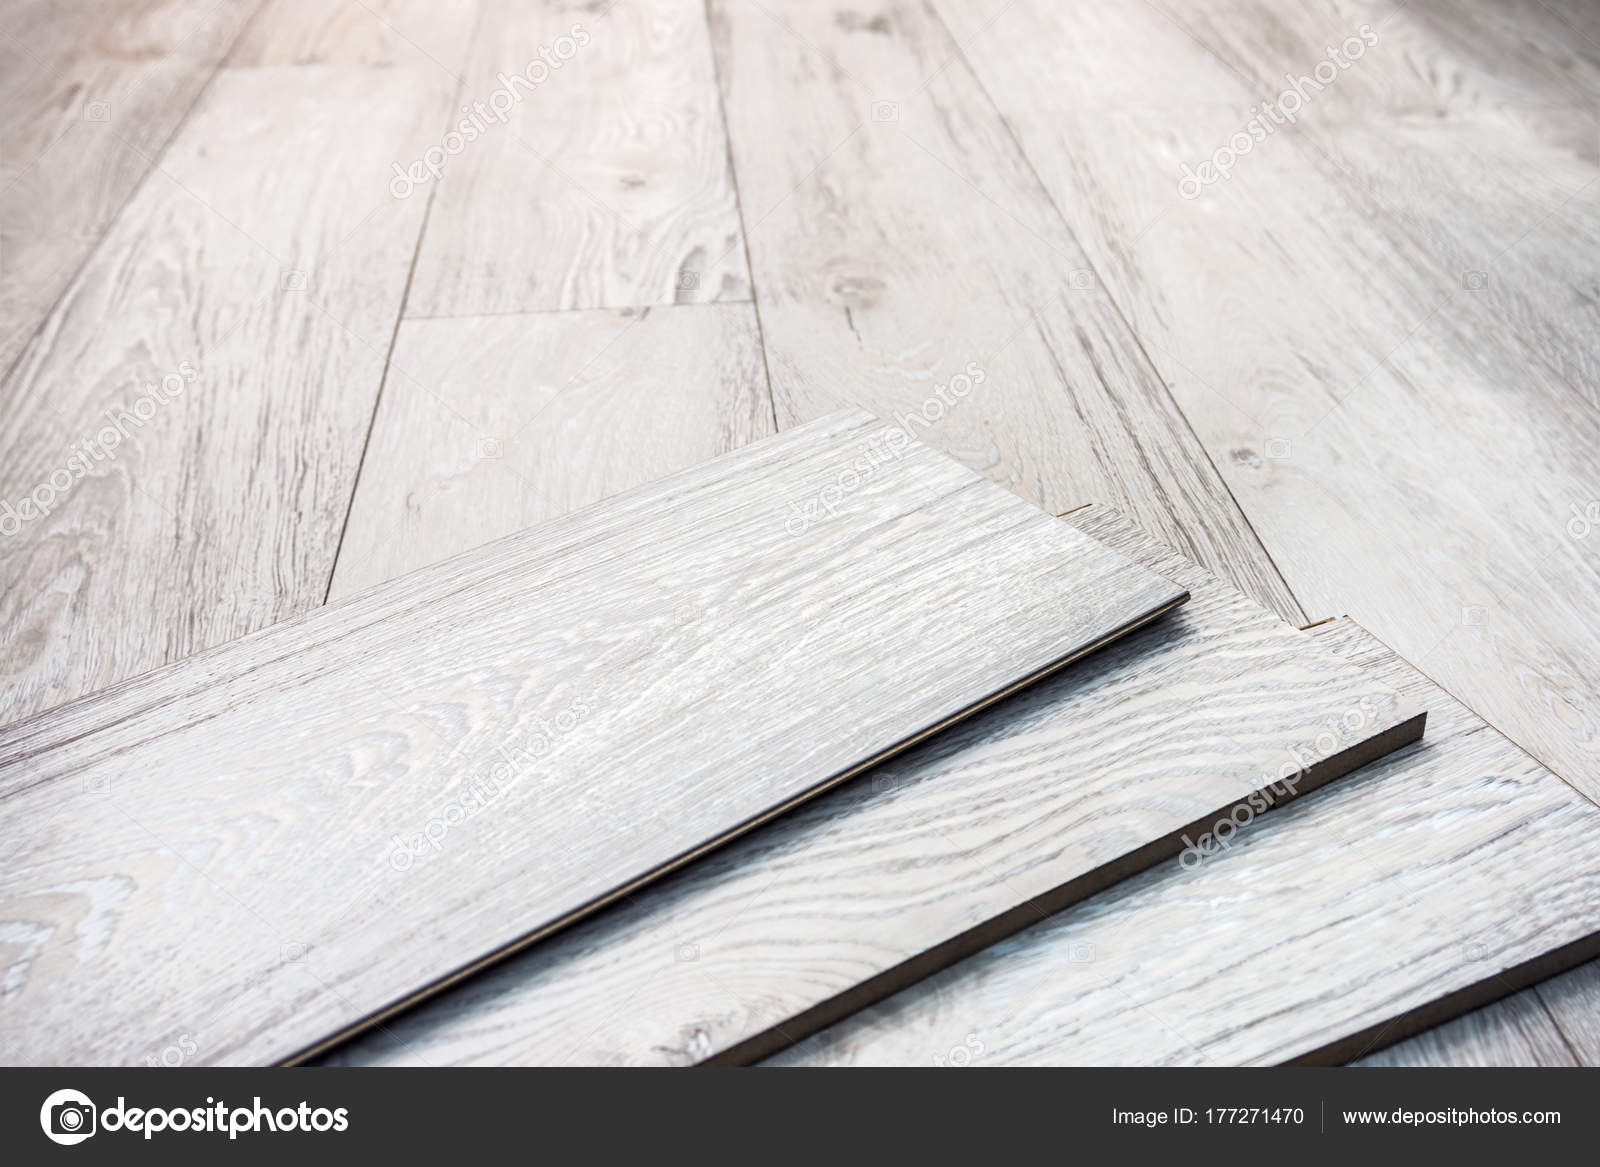 Laminate planks can be laid on the